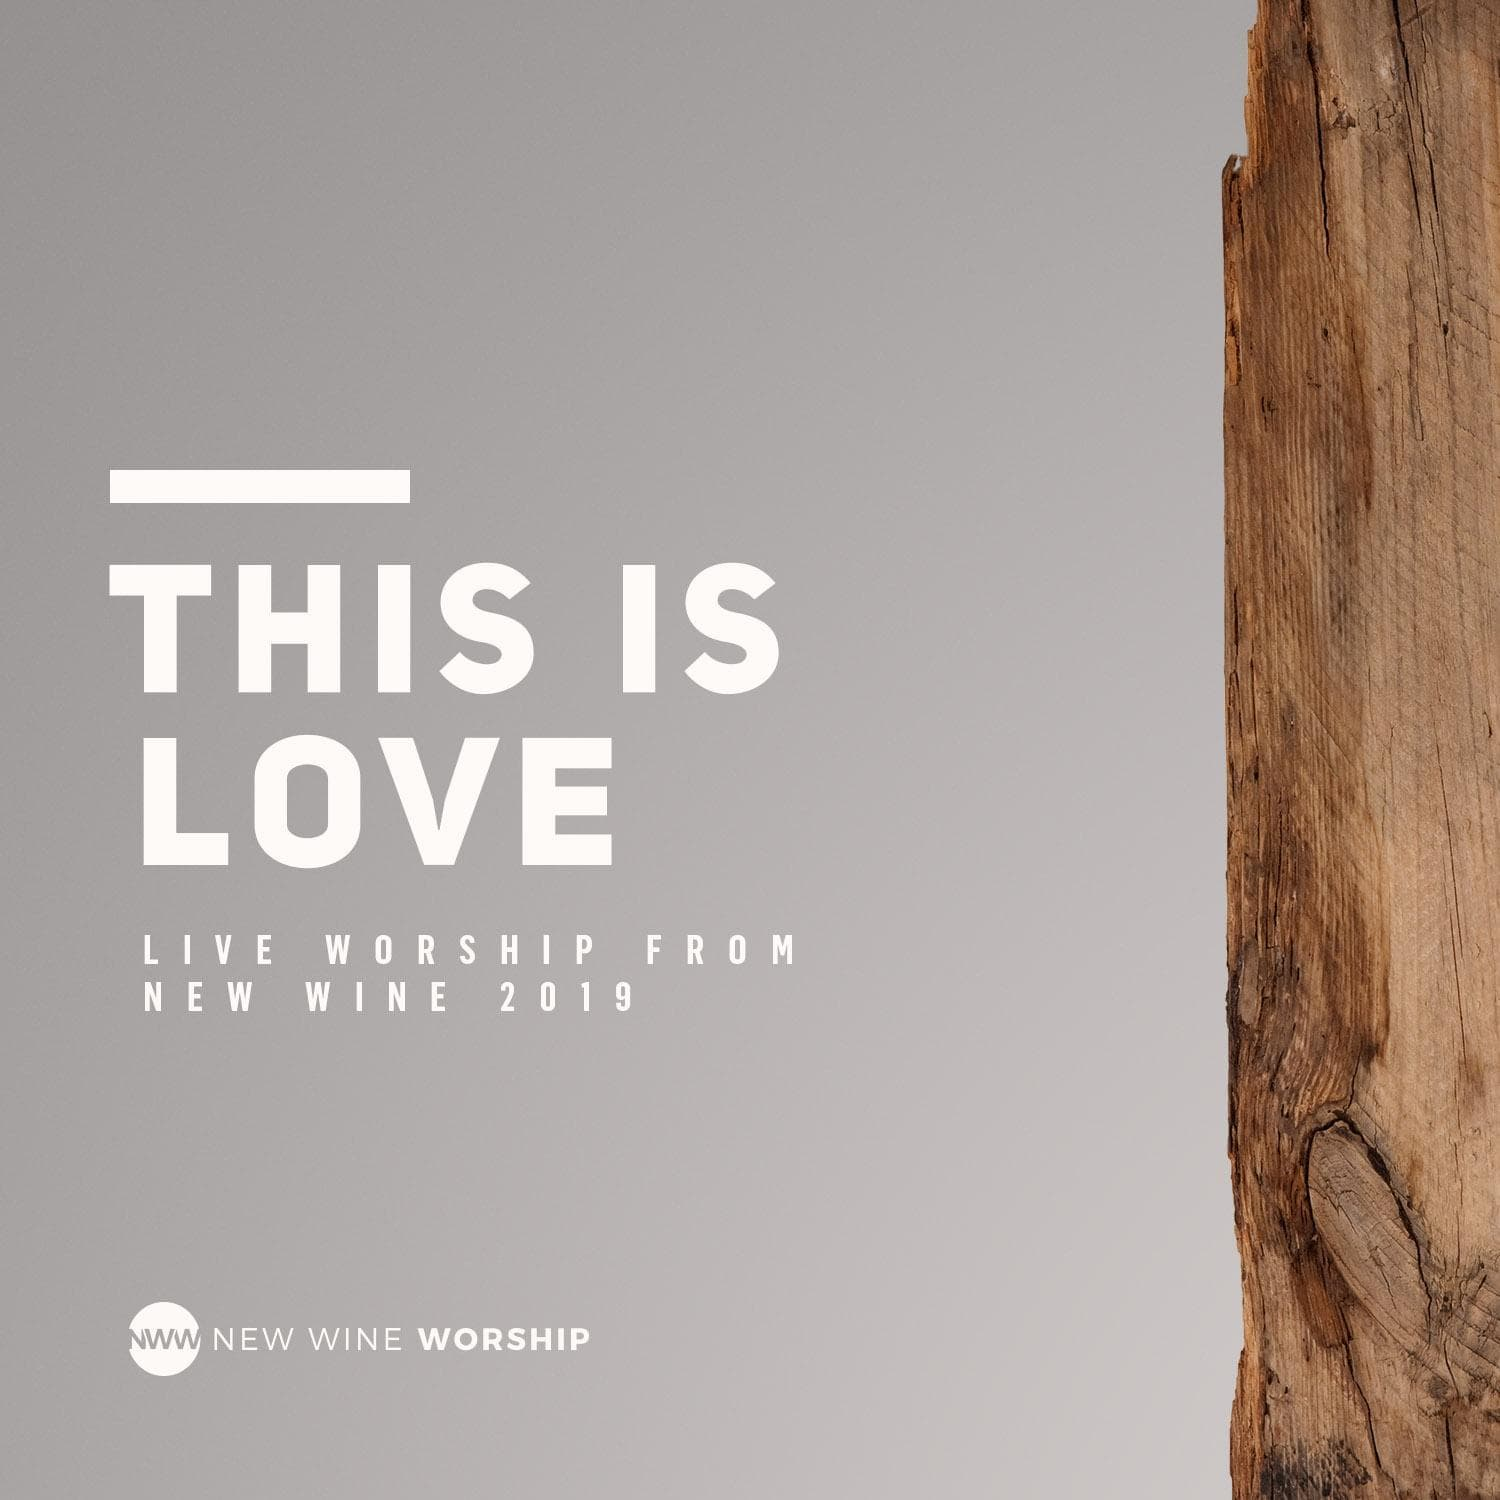 This Is Love - New Wine Worship